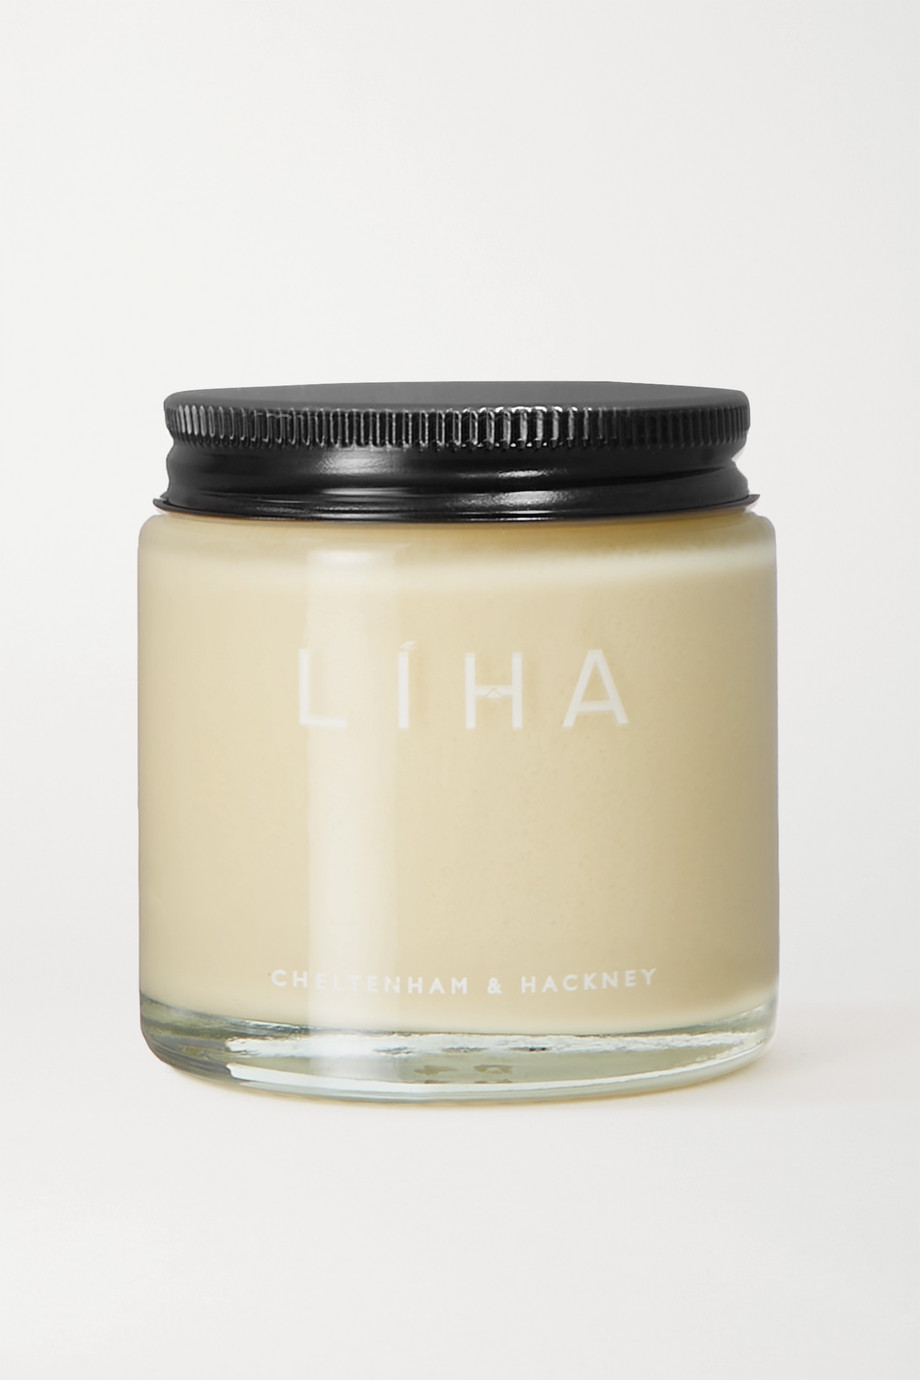 Liha Ivory Shea Butter, 120 ml – Sheabutter